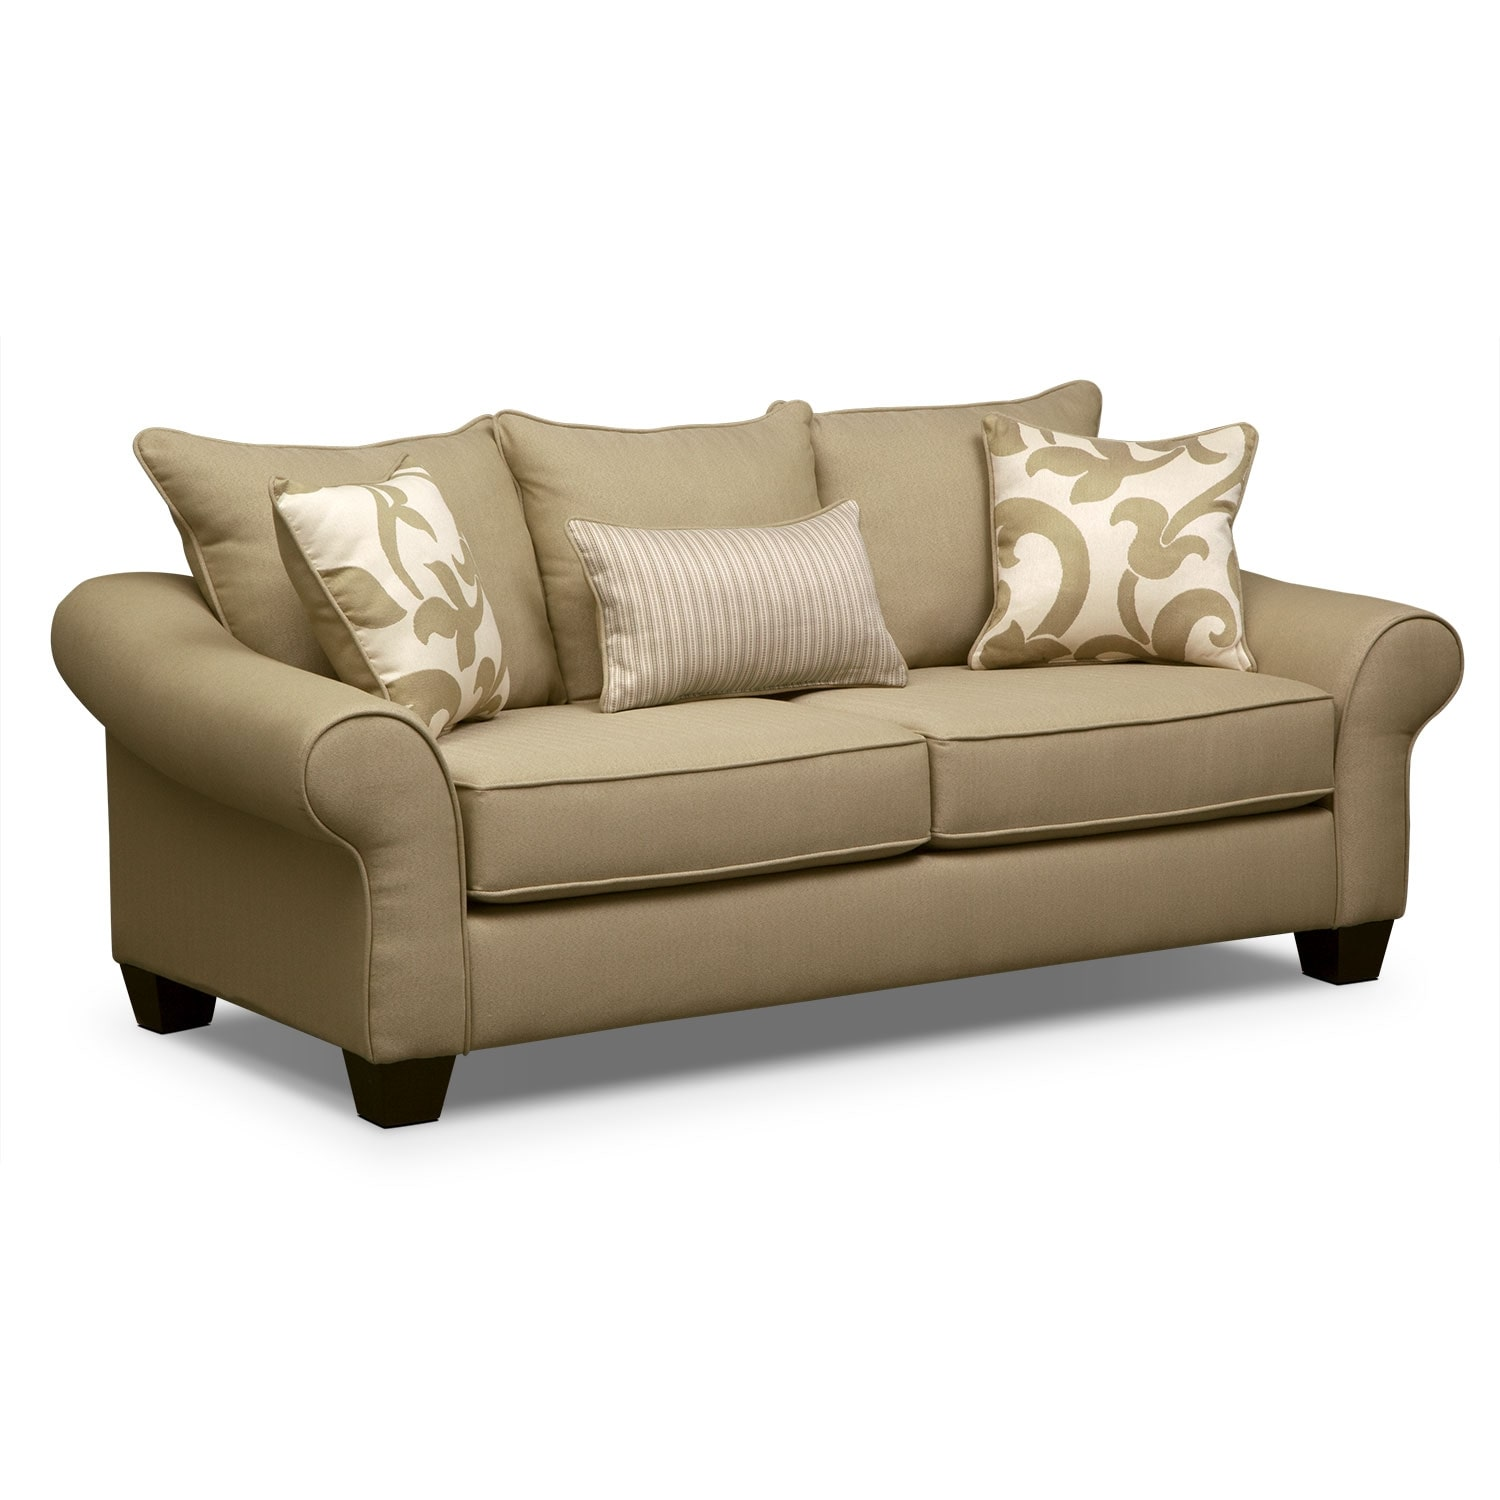 Living Room Furniture - Colette Khaki Full Innerspring Sleeper Sofa